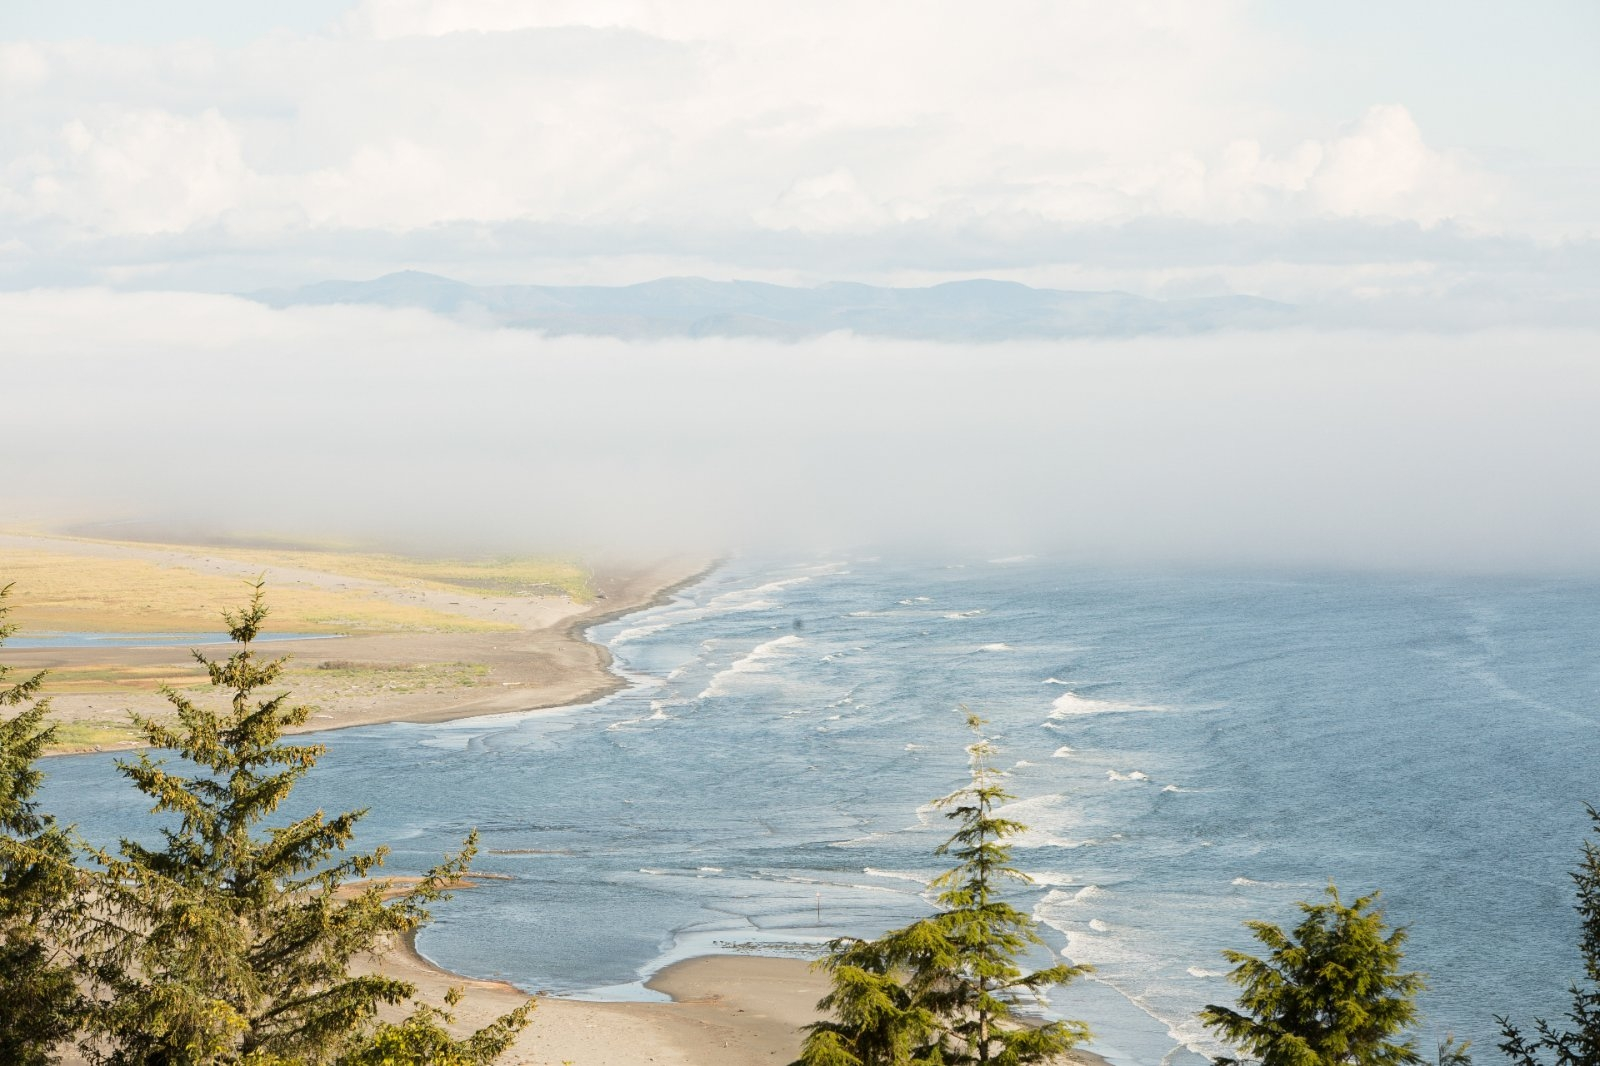 View of Shoalwater Bay, Washington.